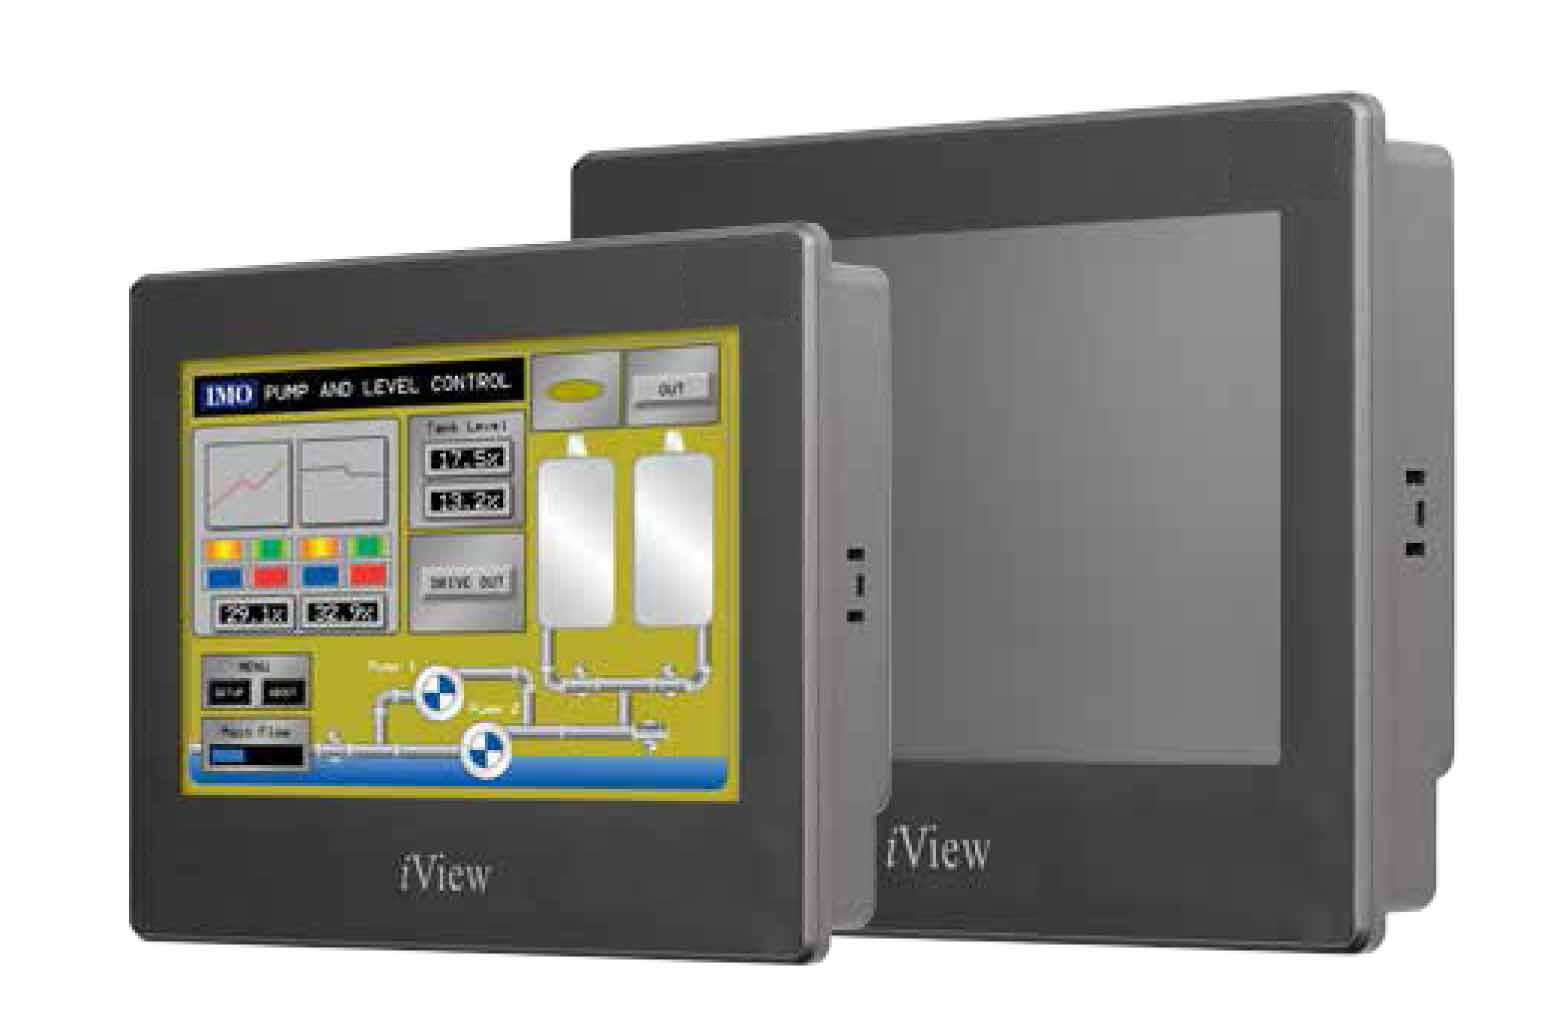 iView HMI - H SERIES